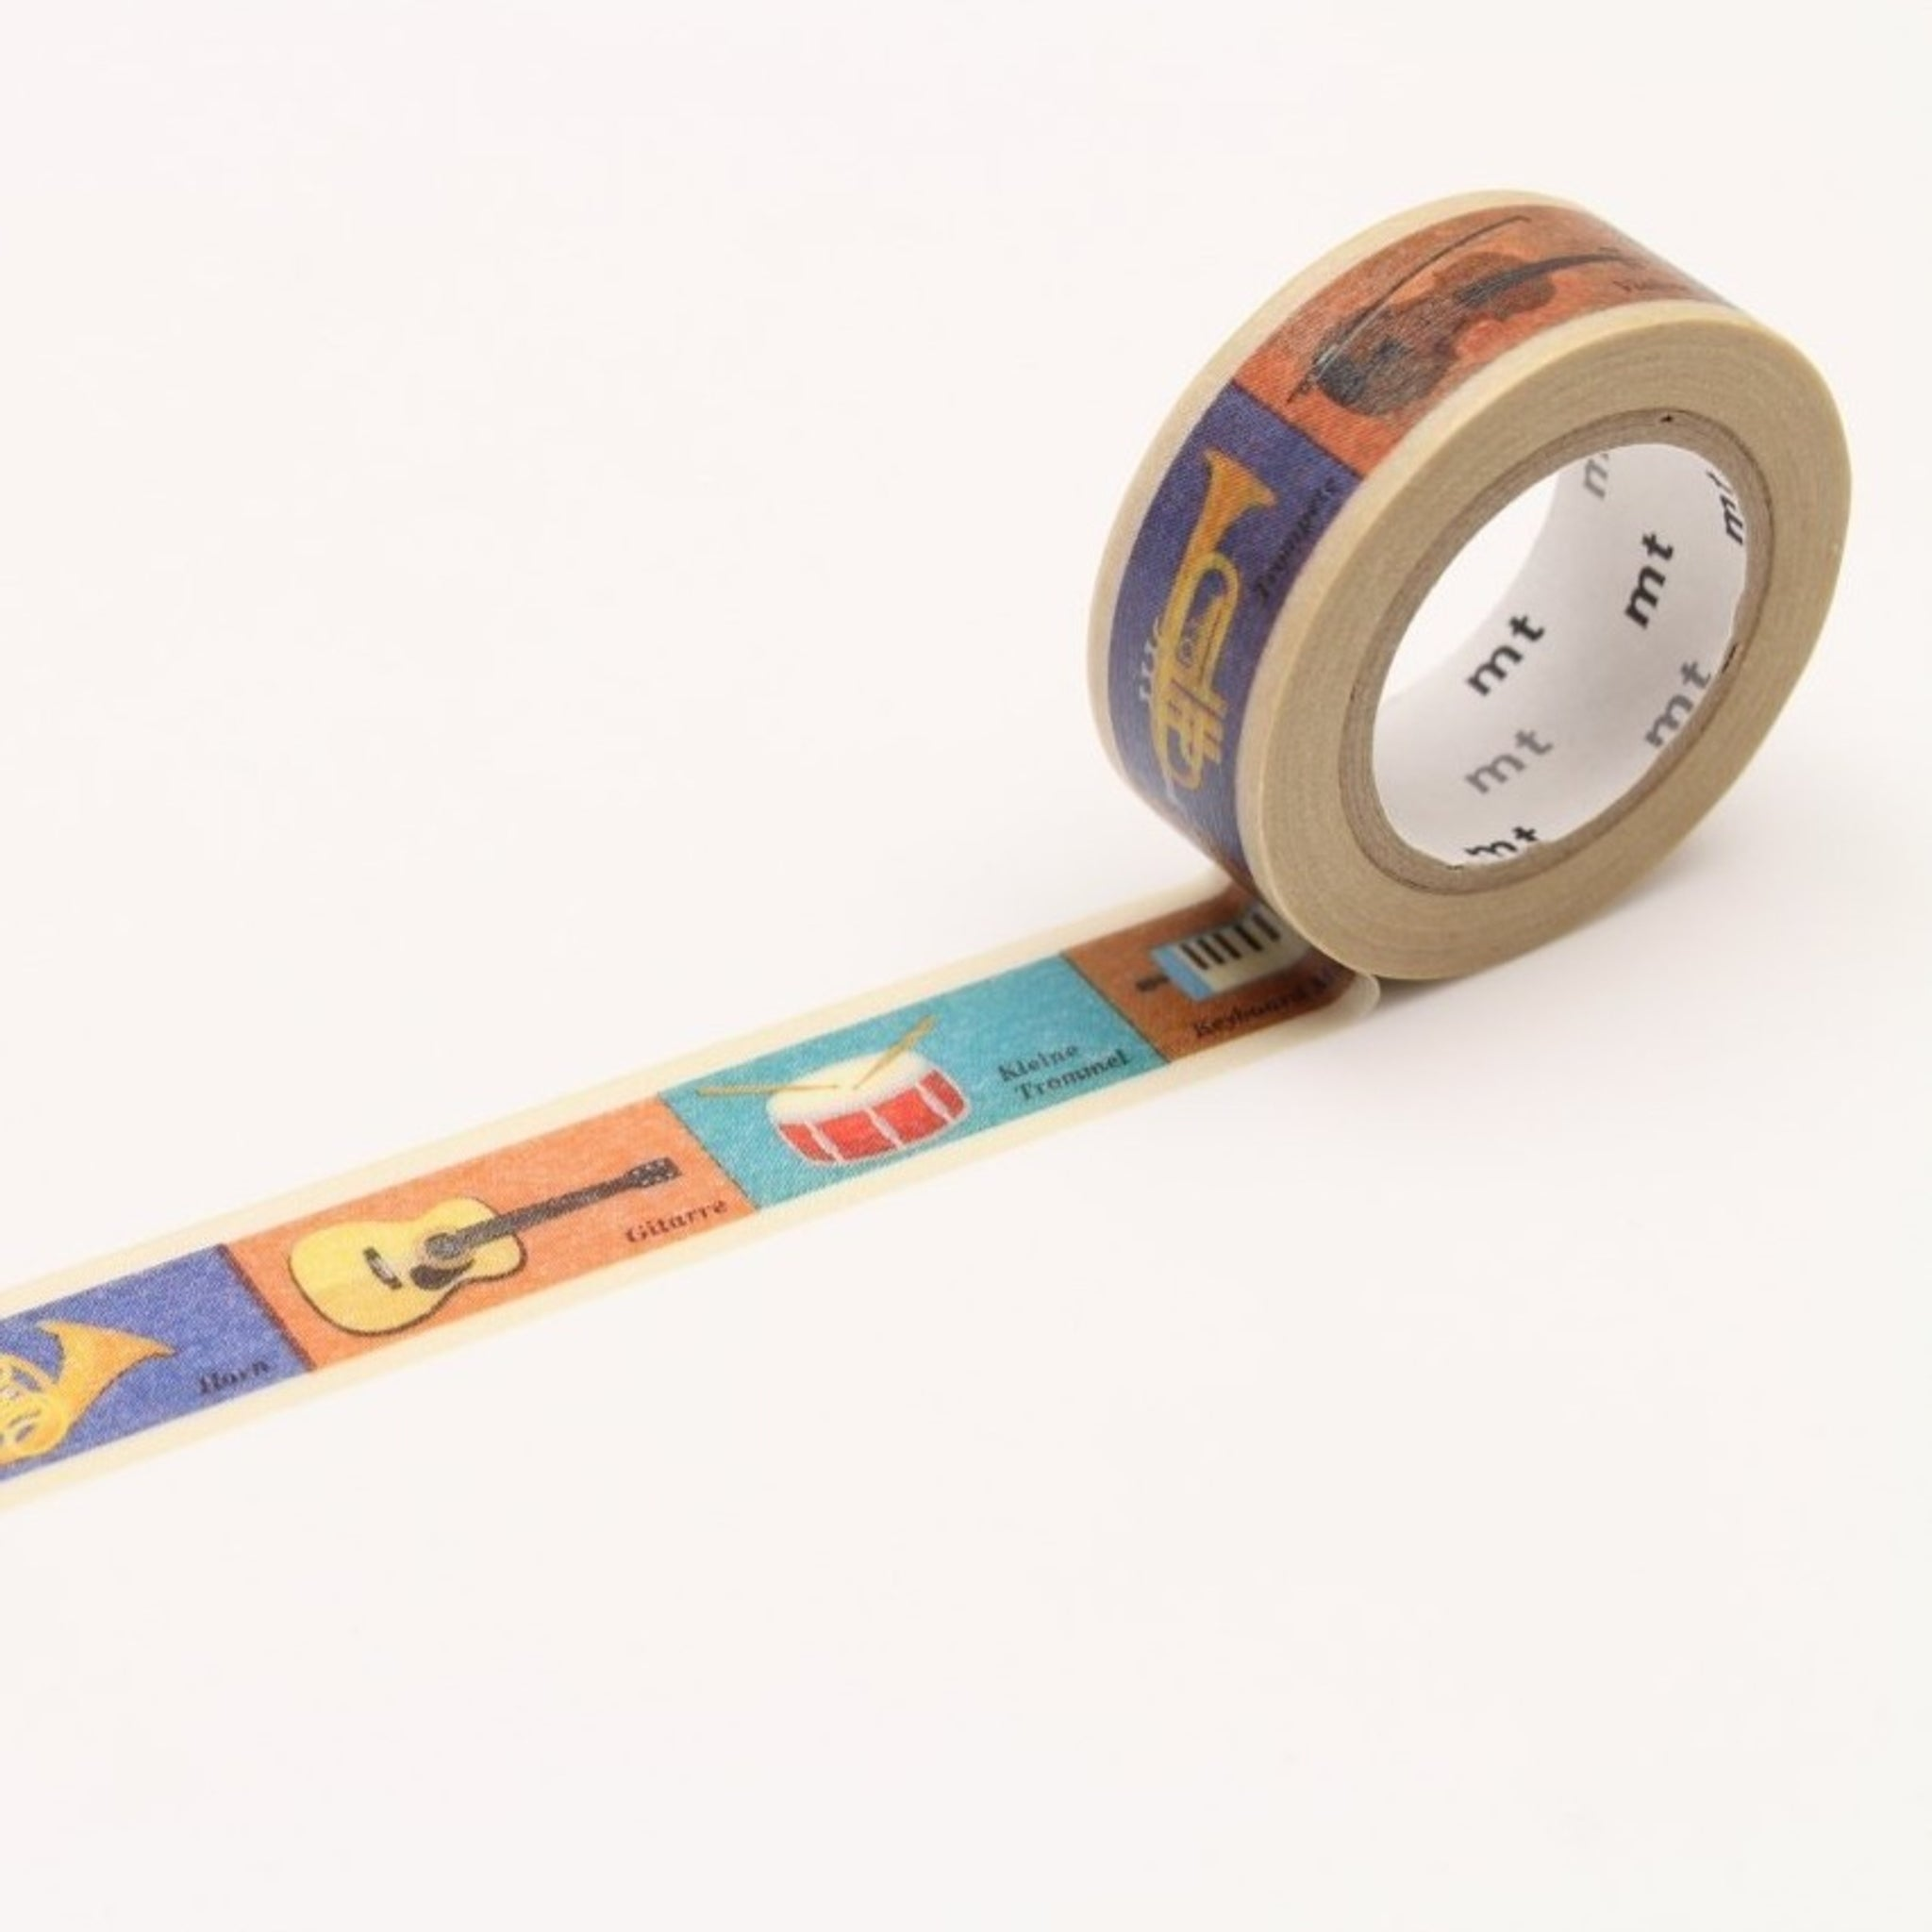 MT For Kids Washi Tape Instrument